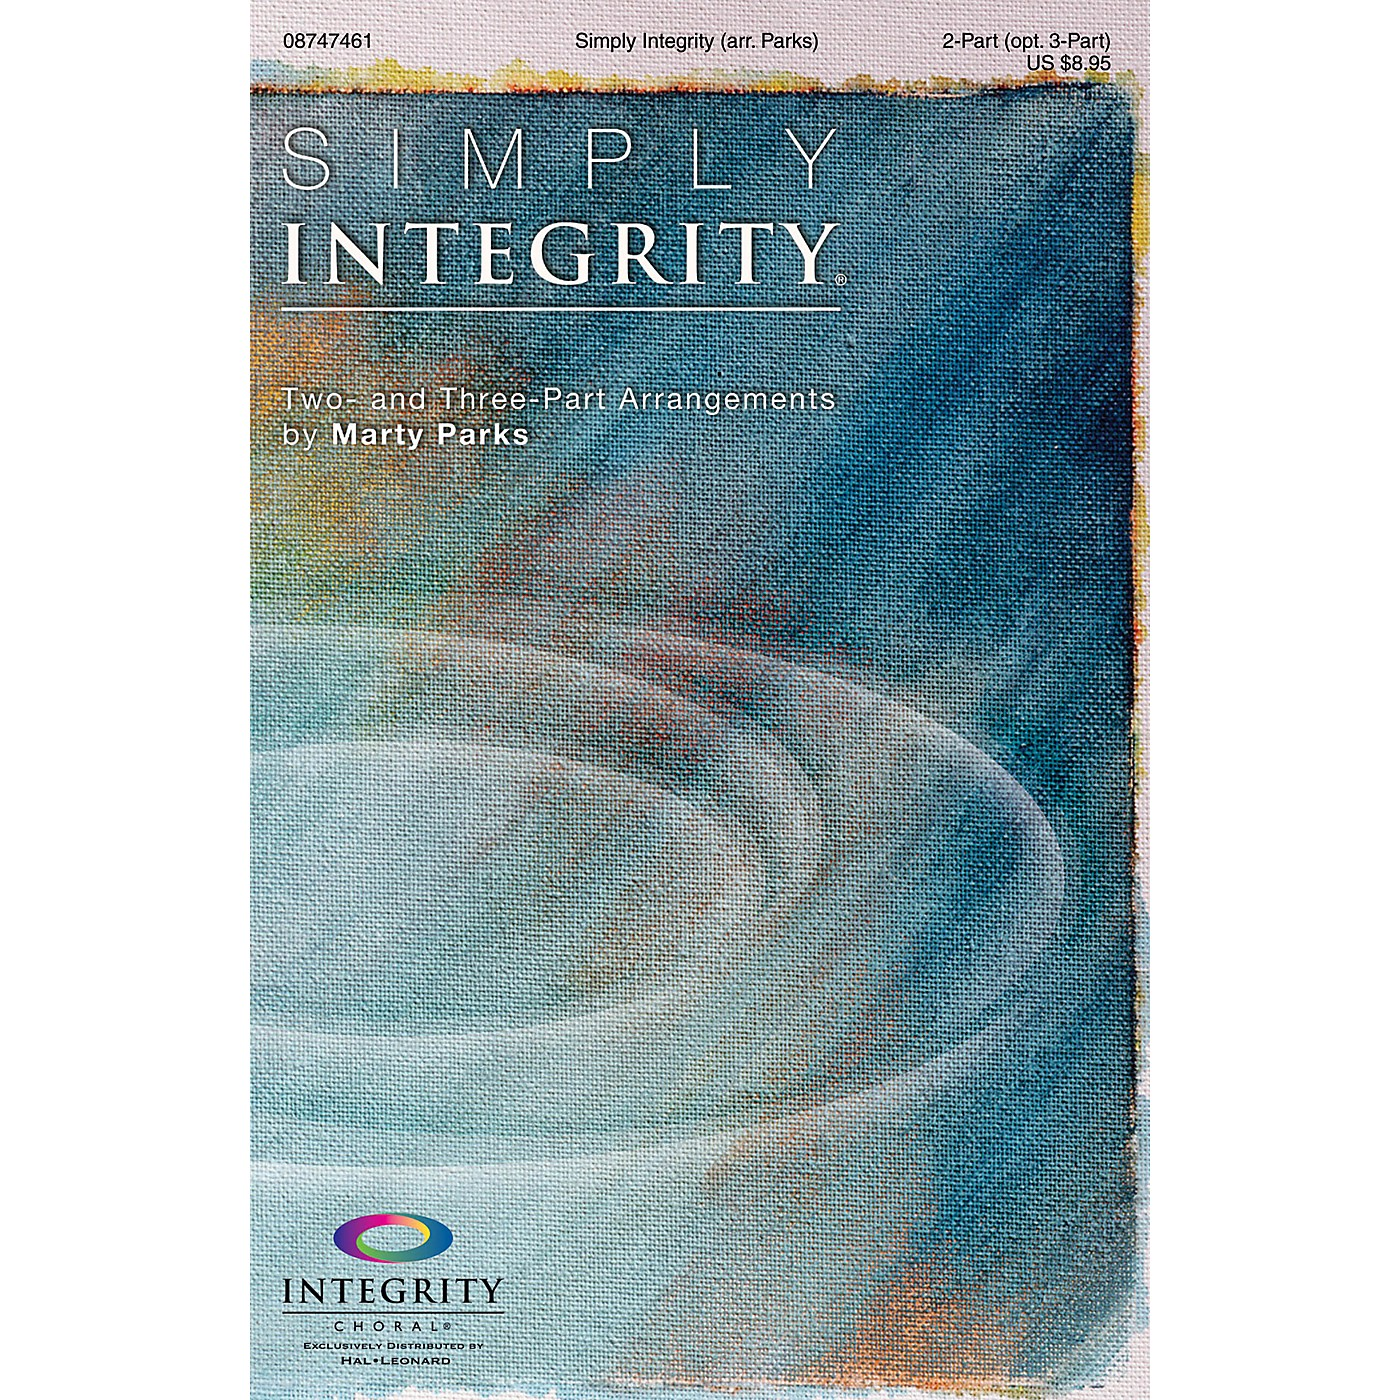 Integrity Choral Simply Integrity (Two- and Three-Part Arrangements) 2-Part (optional 3-Part) Arranged by Marty Parks thumbnail